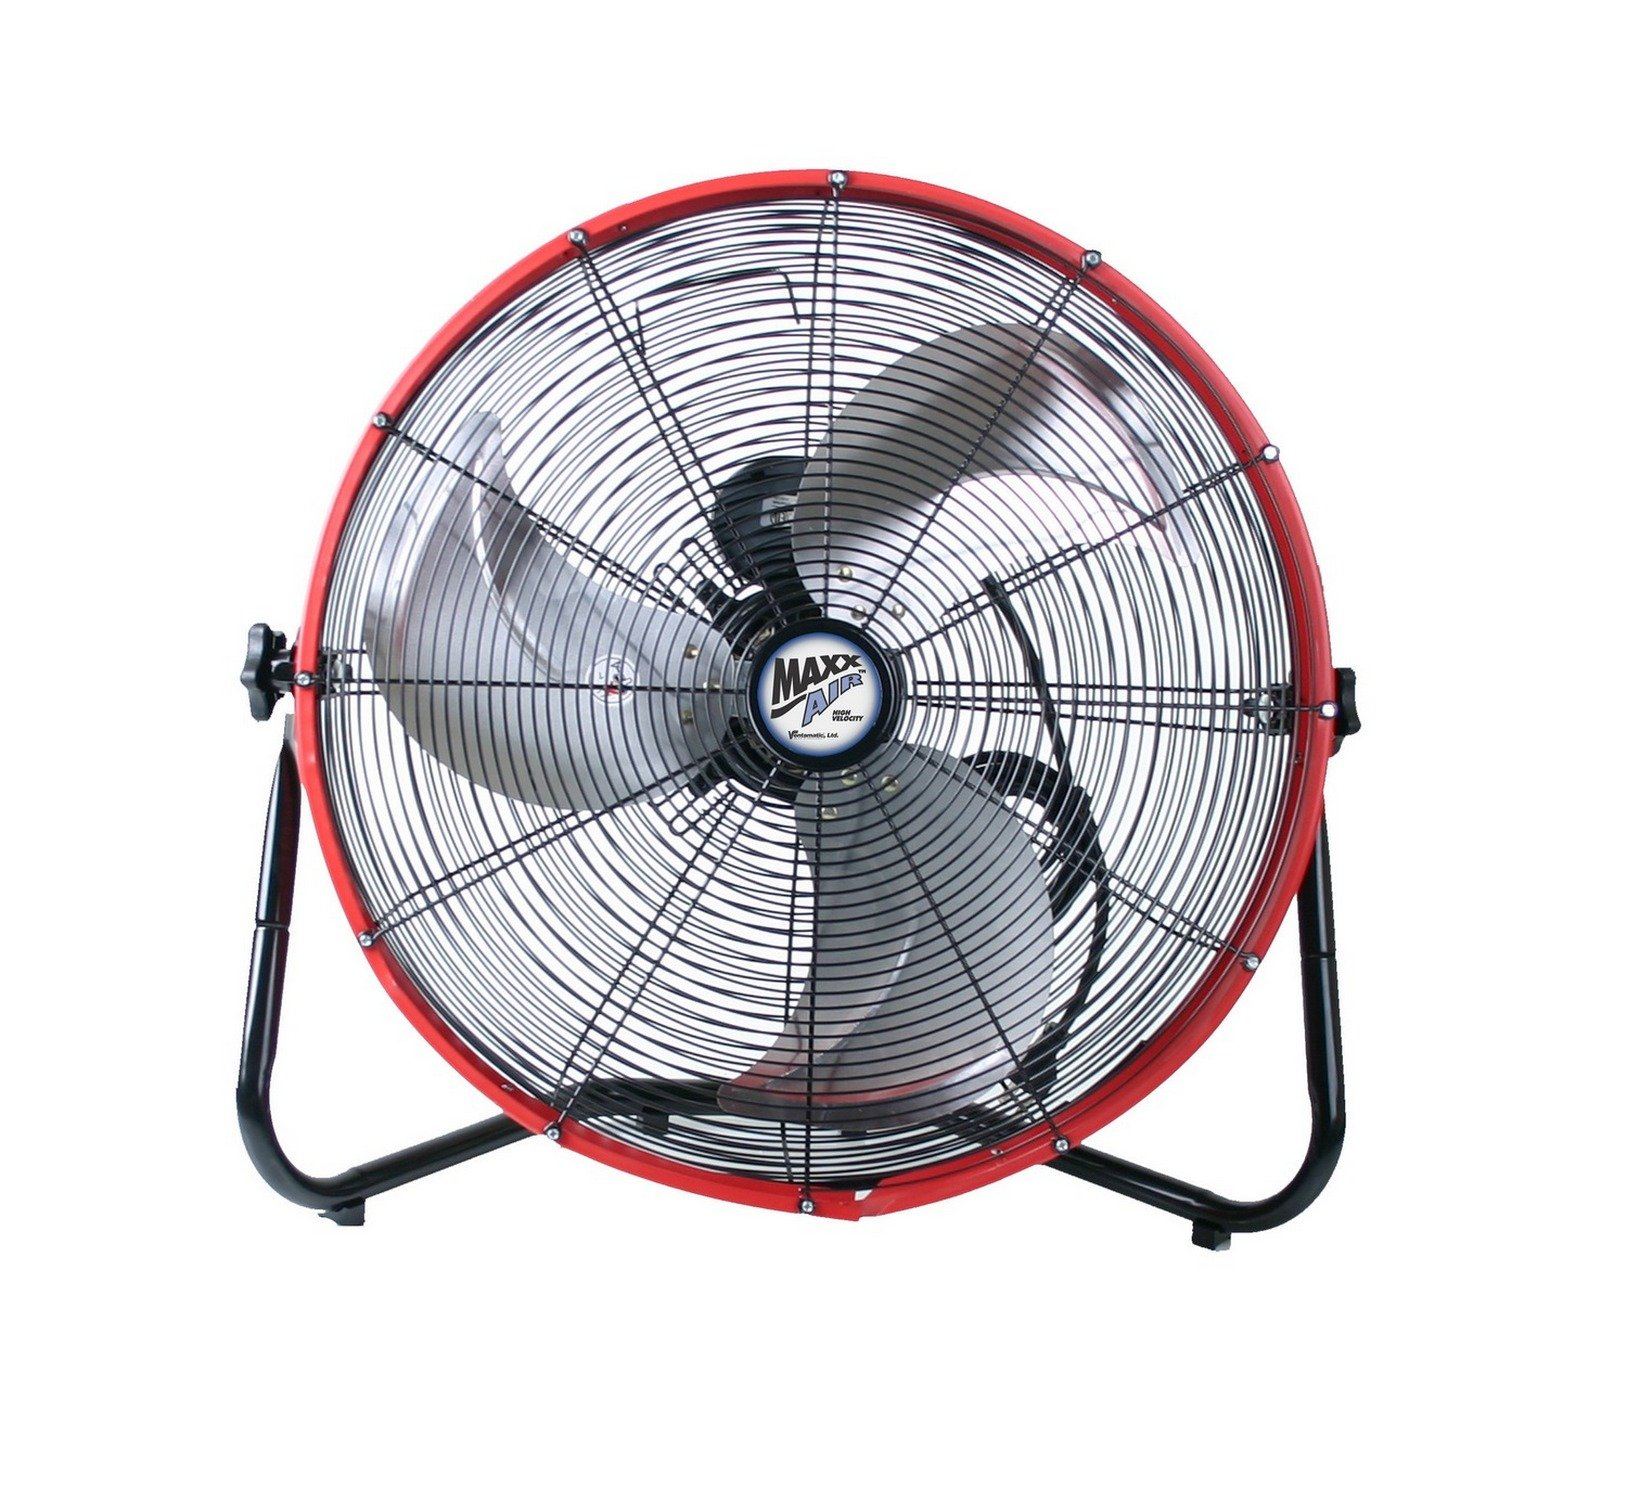 MaxxAir HVFF 20S REDUPS Shroud Floor Fan, 20-Inch, Red